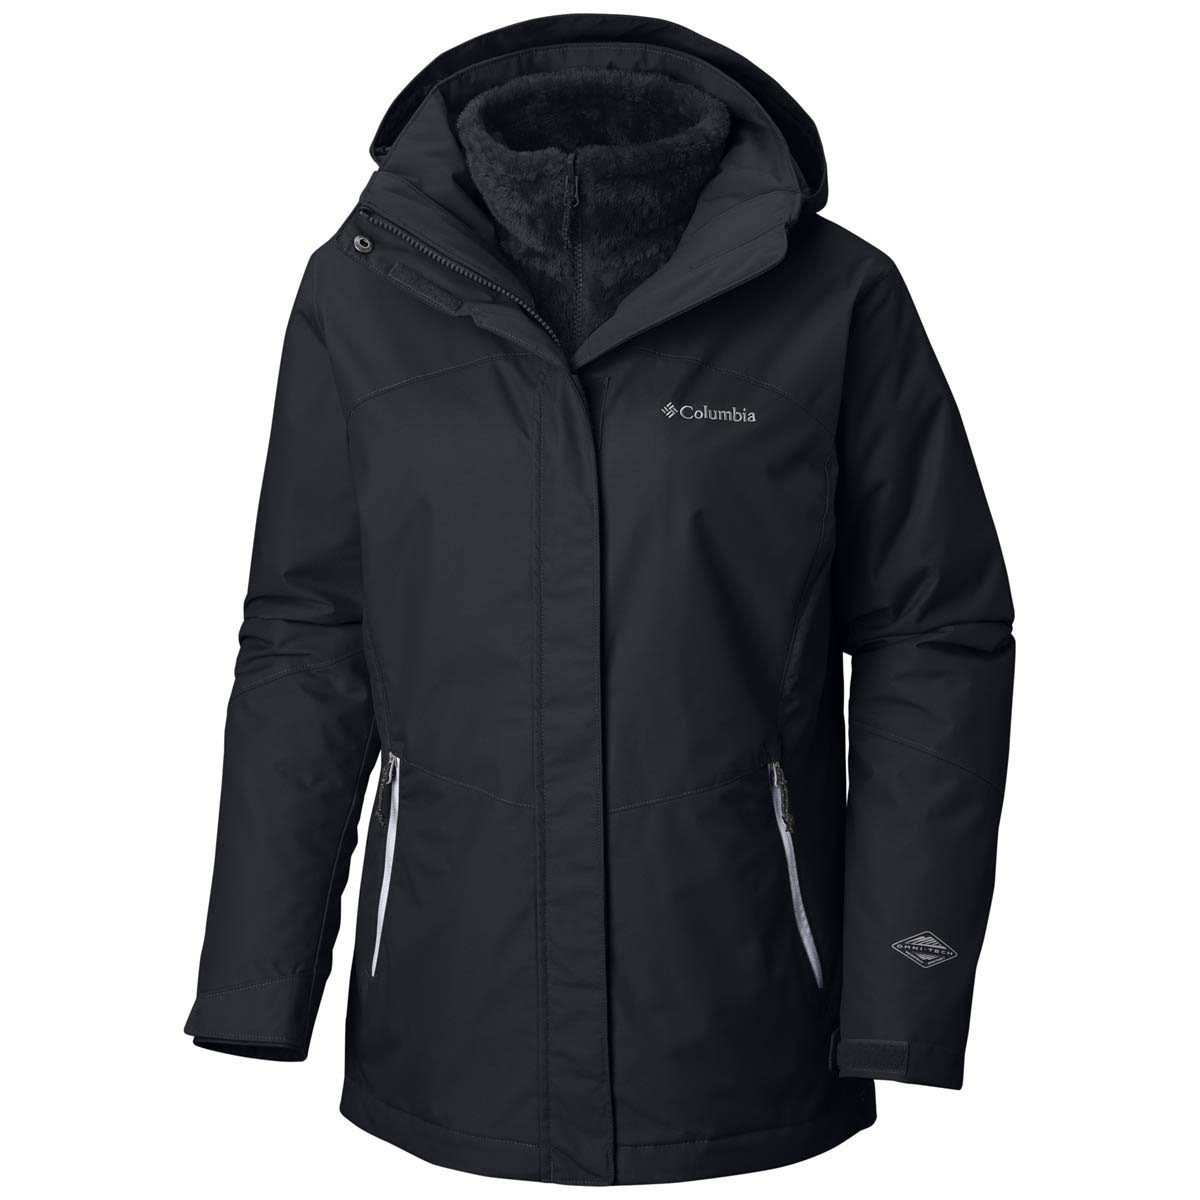 Columbia Bugaboo II Fleece Interchange Jacket Women's Black Small